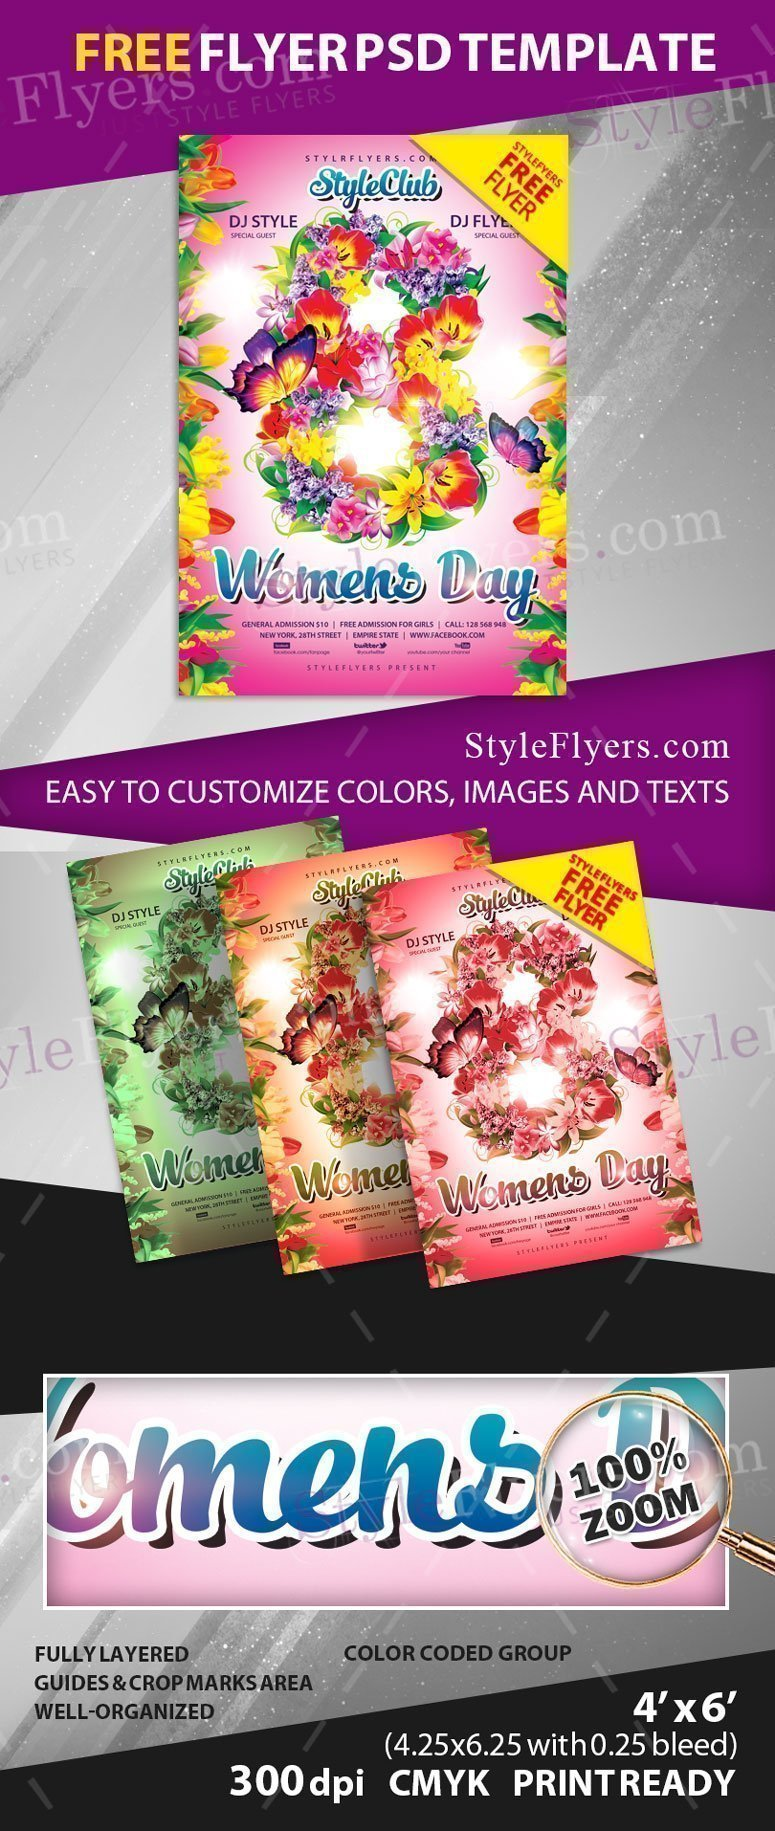 Womens Day Flyer FREE PSD Flyer Template Free Download #23156 - Styleflyers